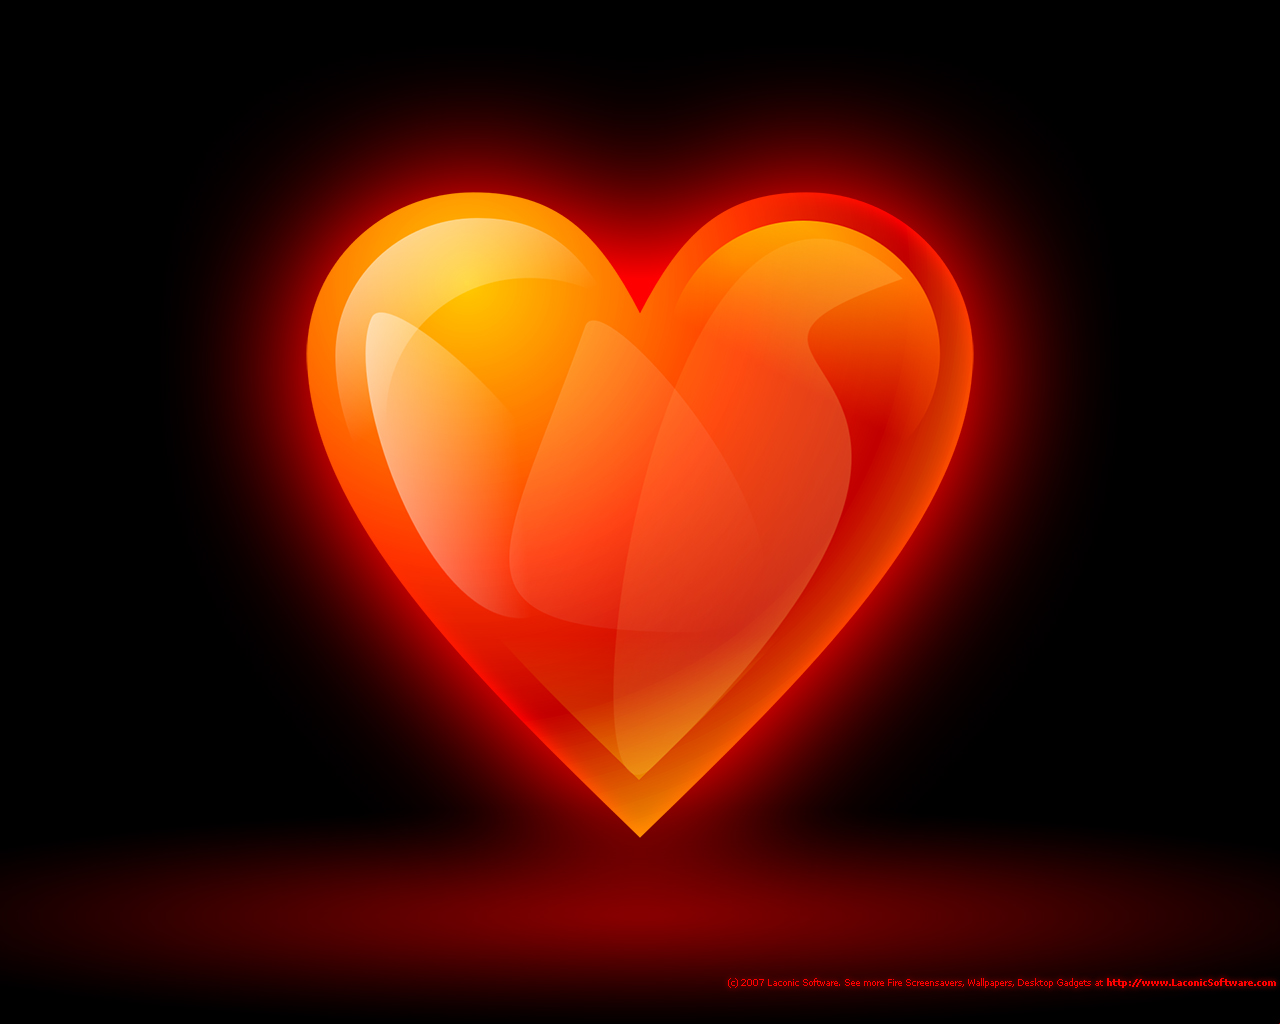 Heart with flames seo keywords images for hearts with flames around it clip art